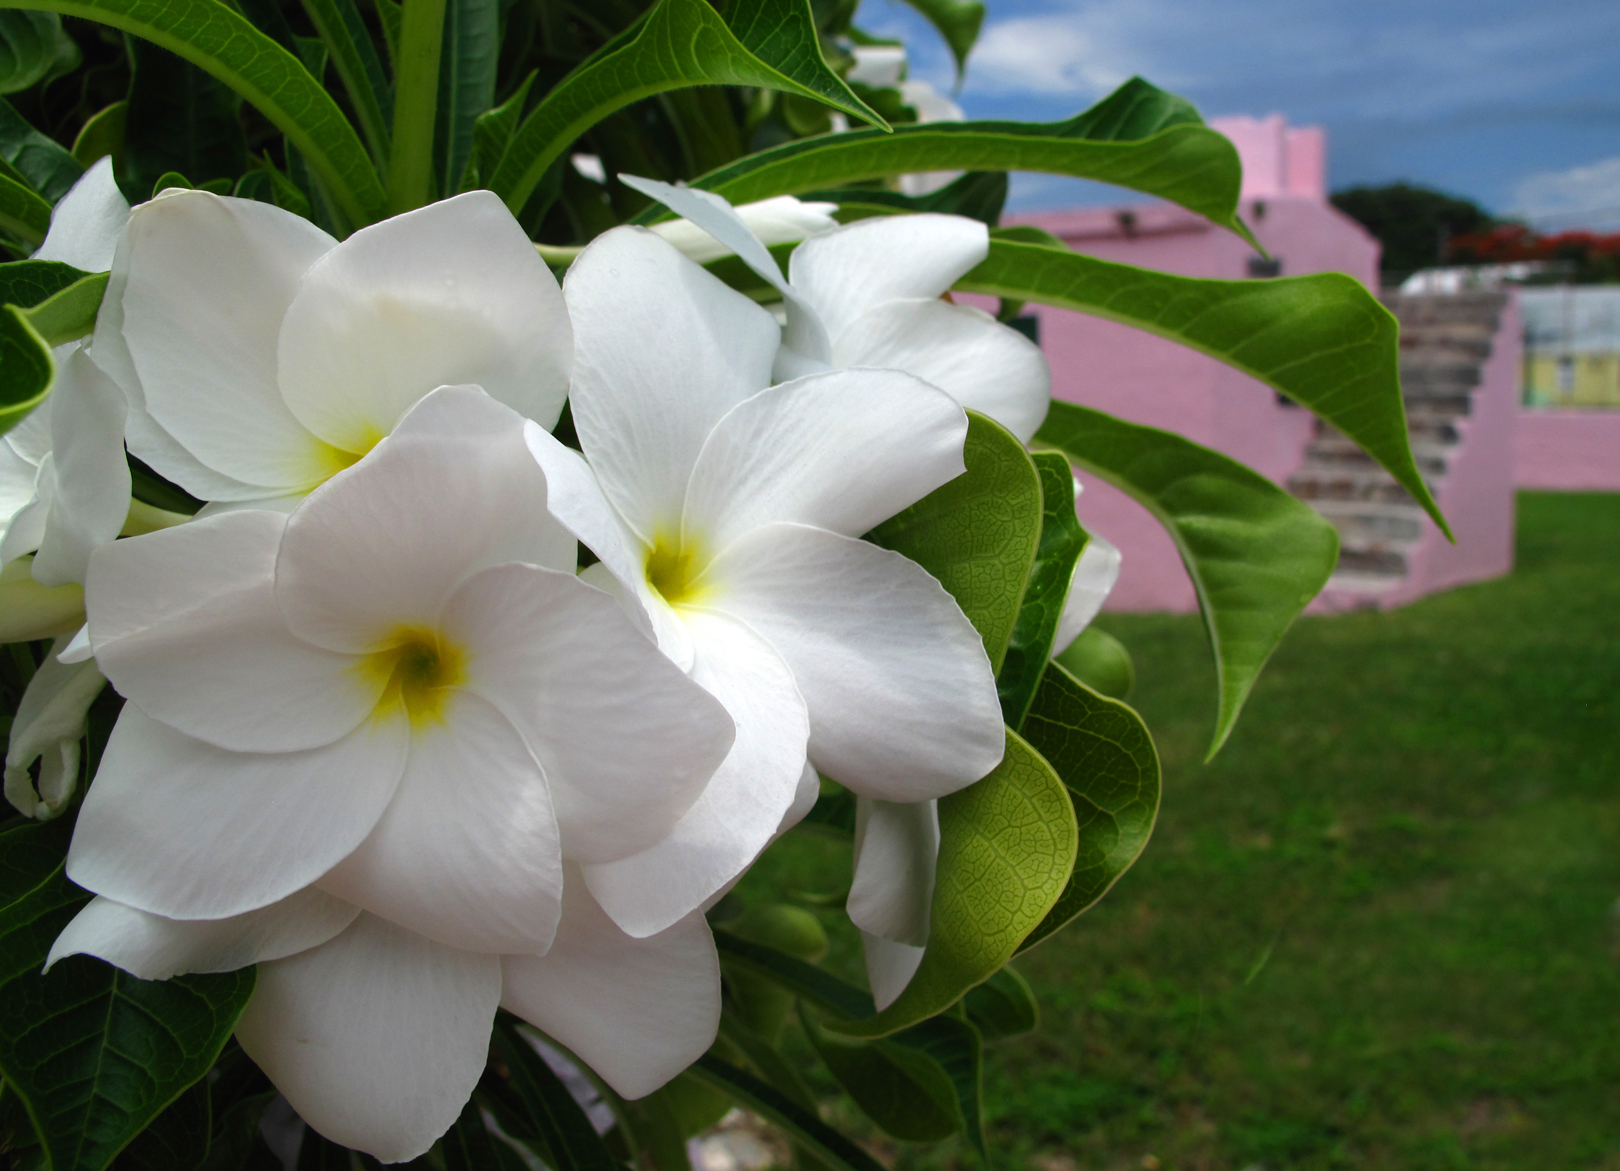 bahamas, abaco, green turtle cay, frangipani, tropical flower